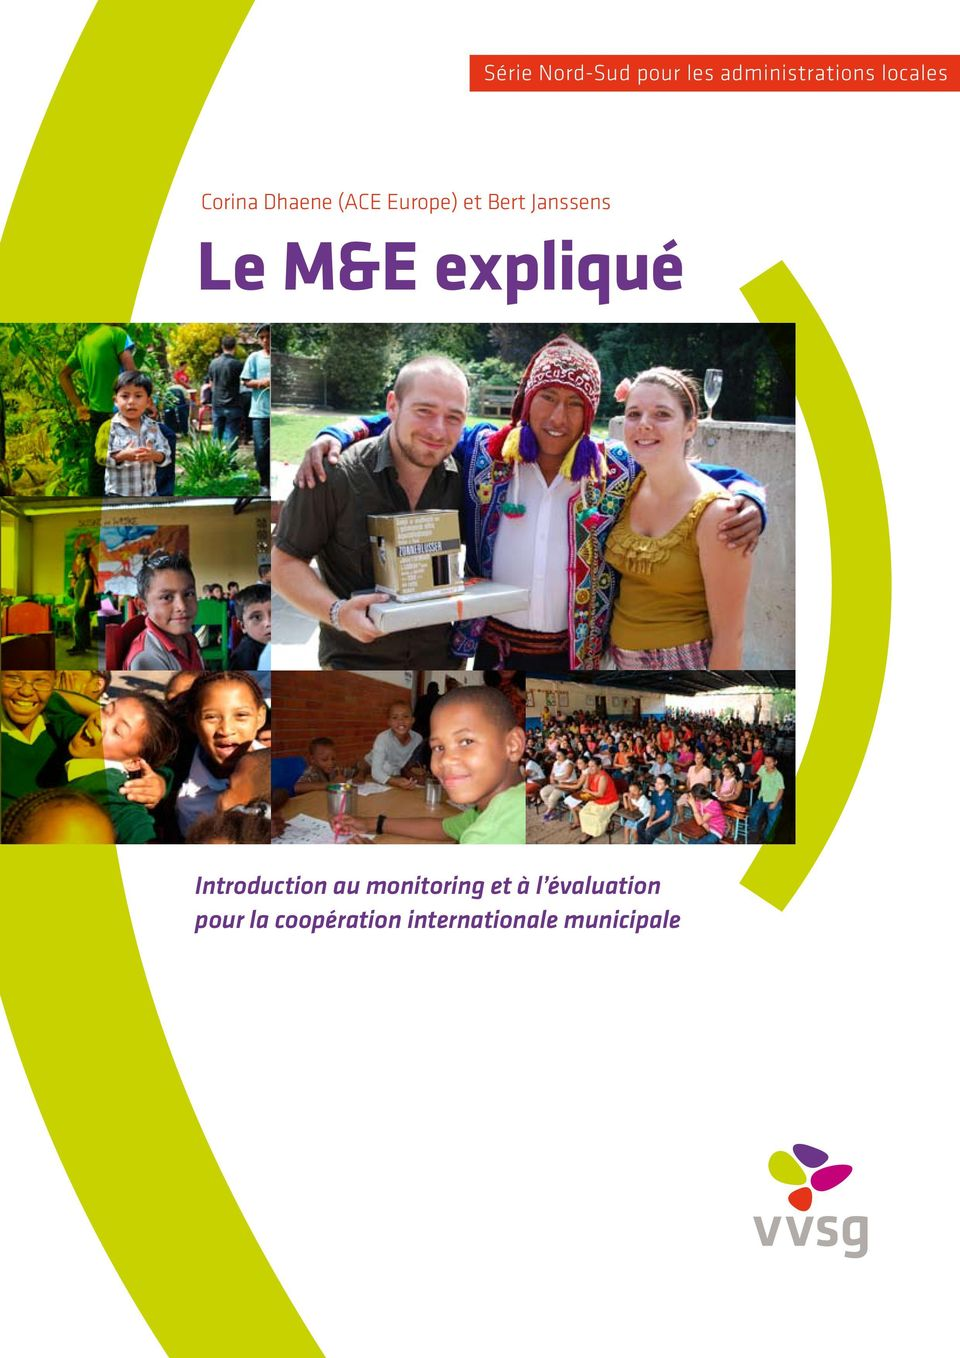 M&E expliqué Introduction au monitoring et à l